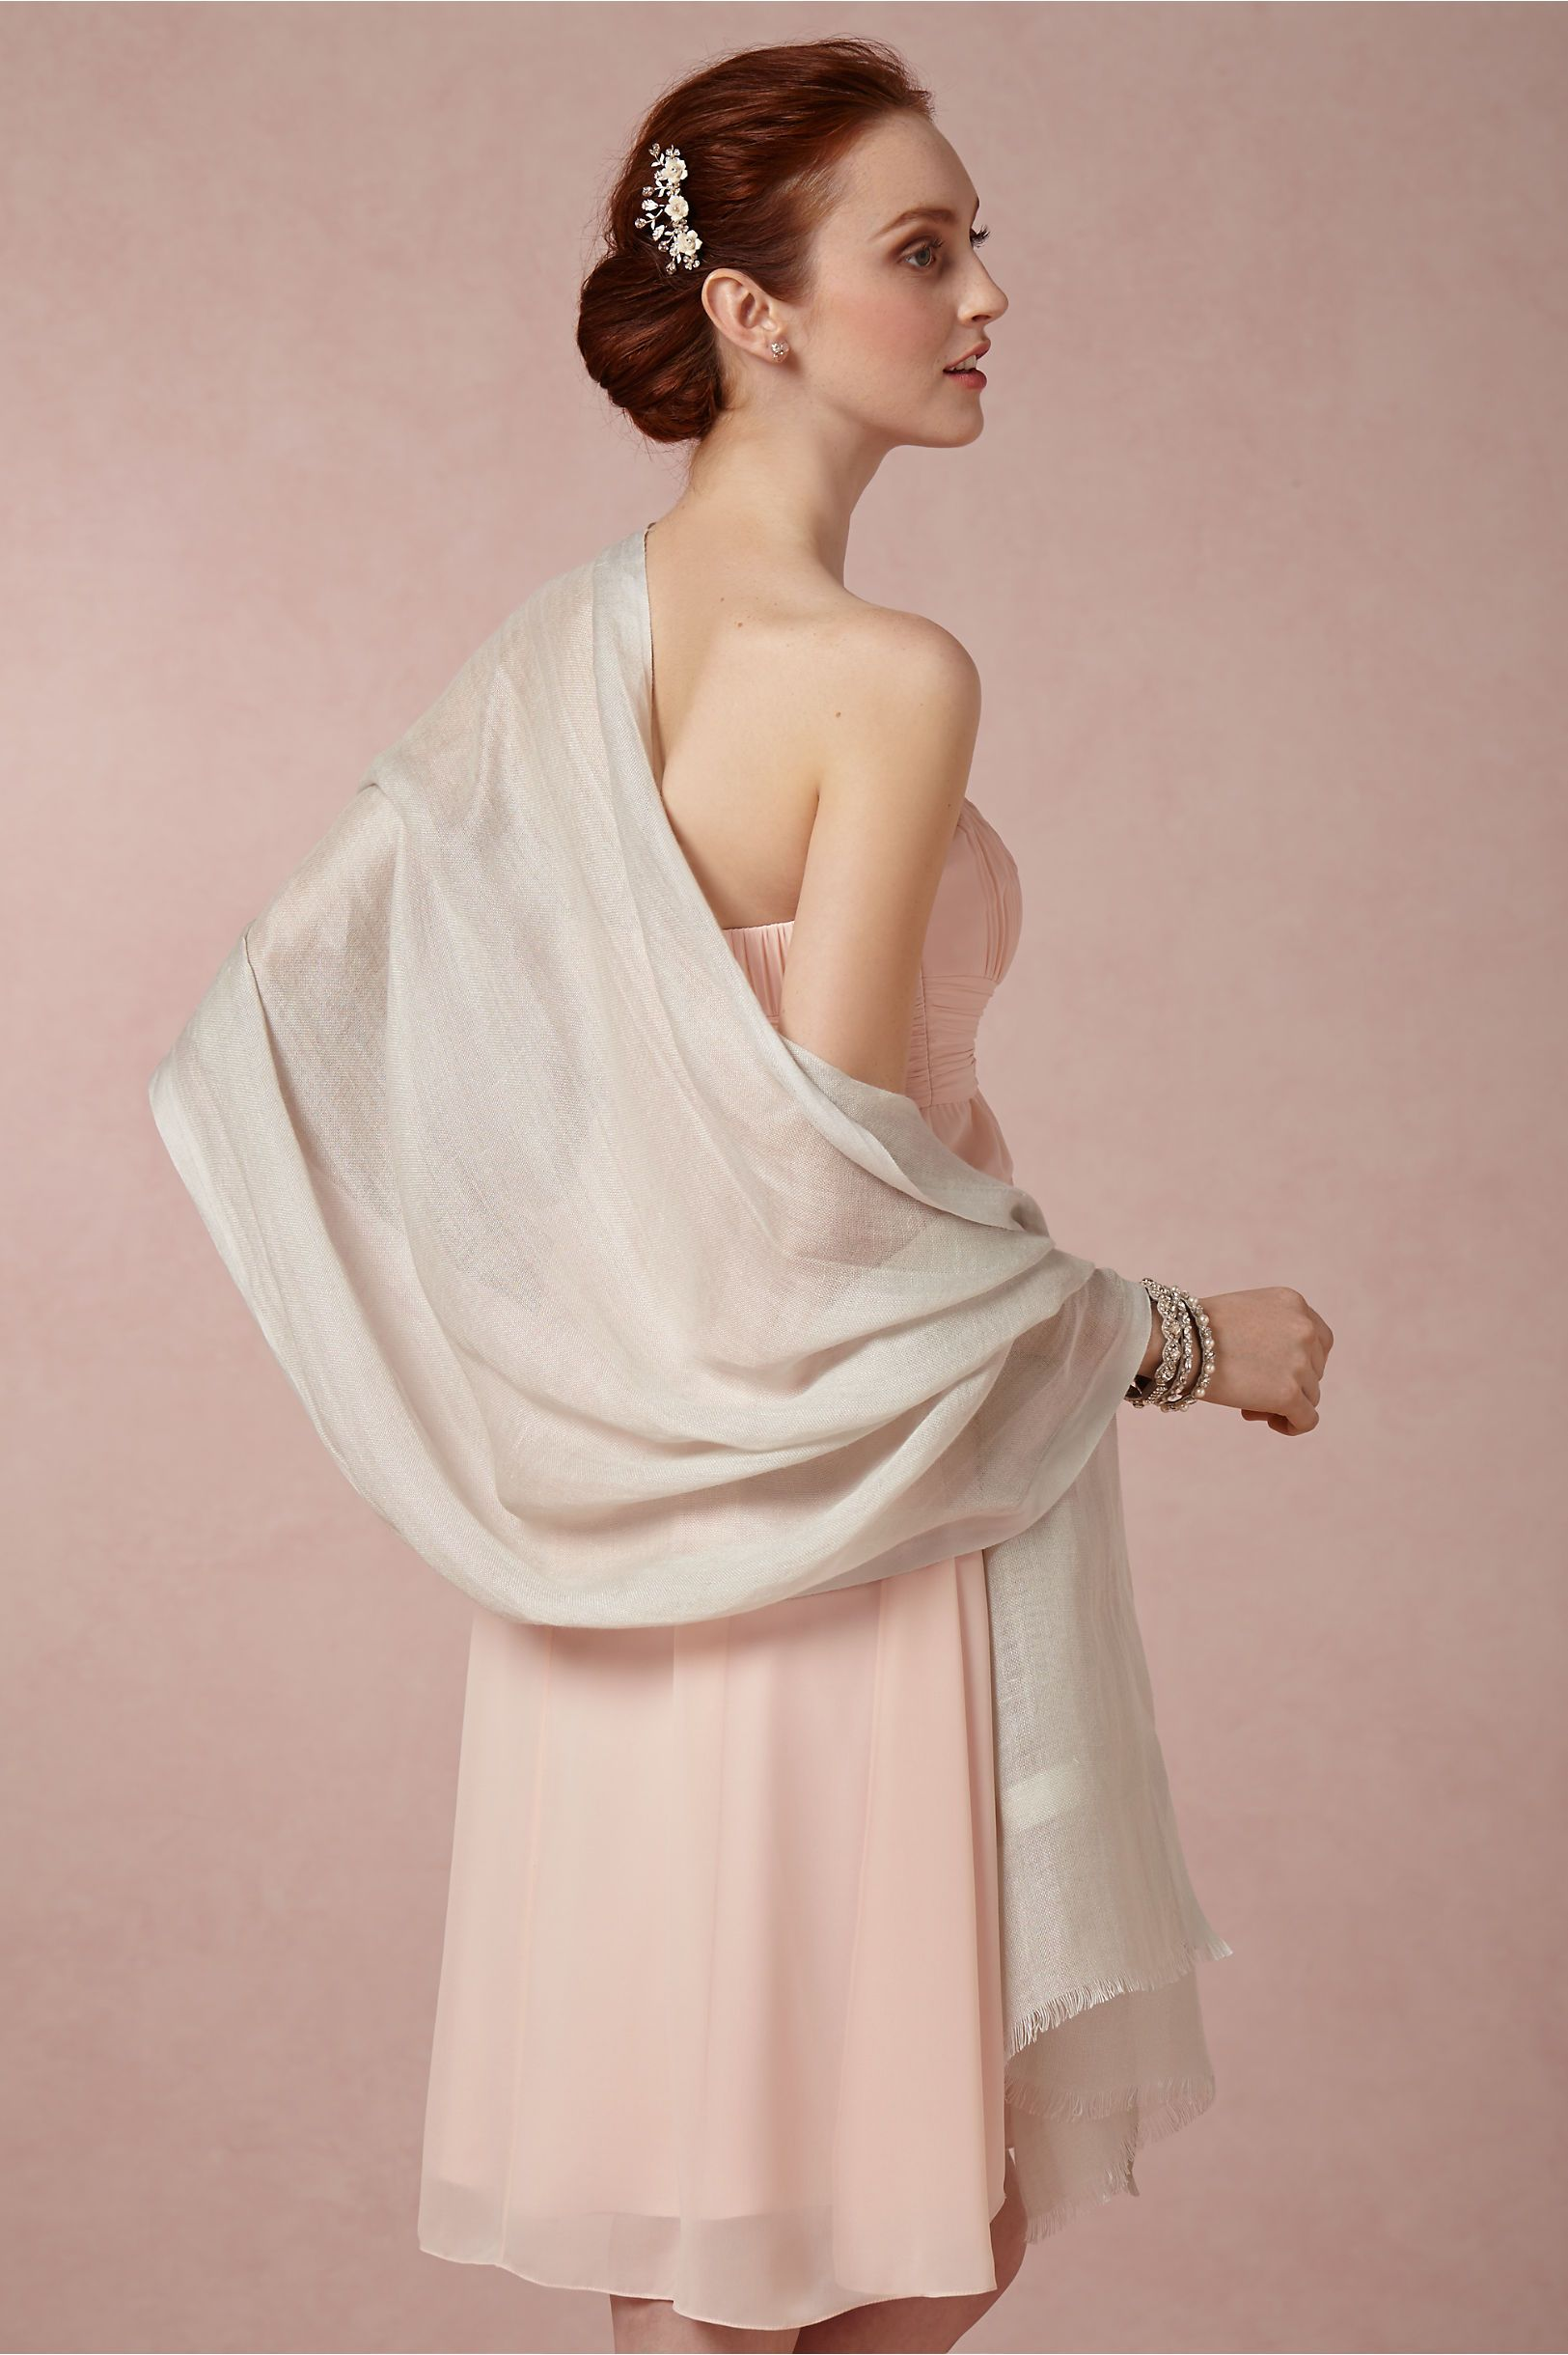 BHLDN Carlotta Wrap in Shoes & Accessories Cover Ups at BHLDN ...